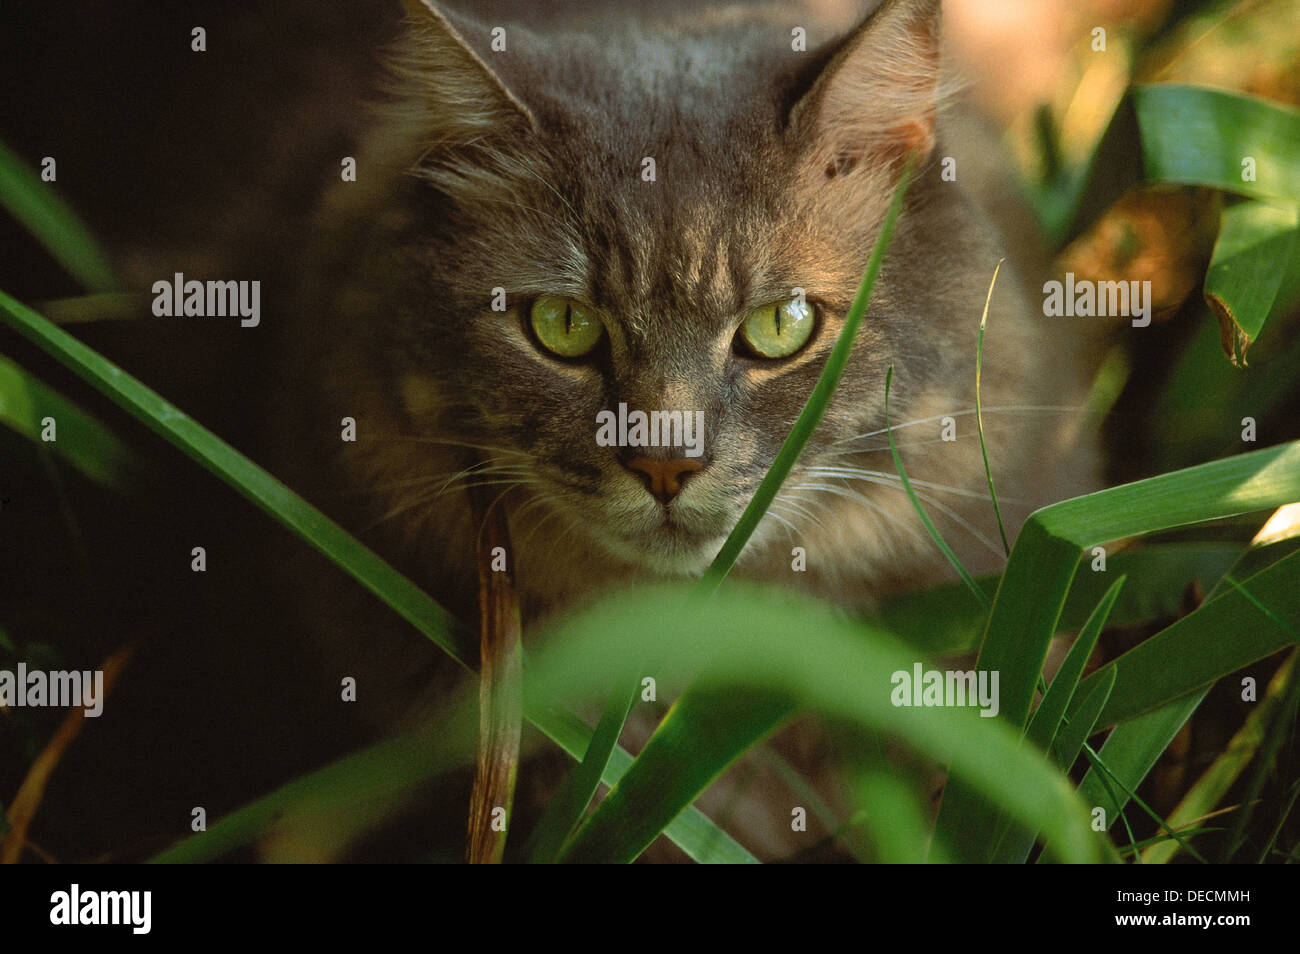 GREY CAT WITH BRIGHT GREEN EYES Stock Royalty Free Image